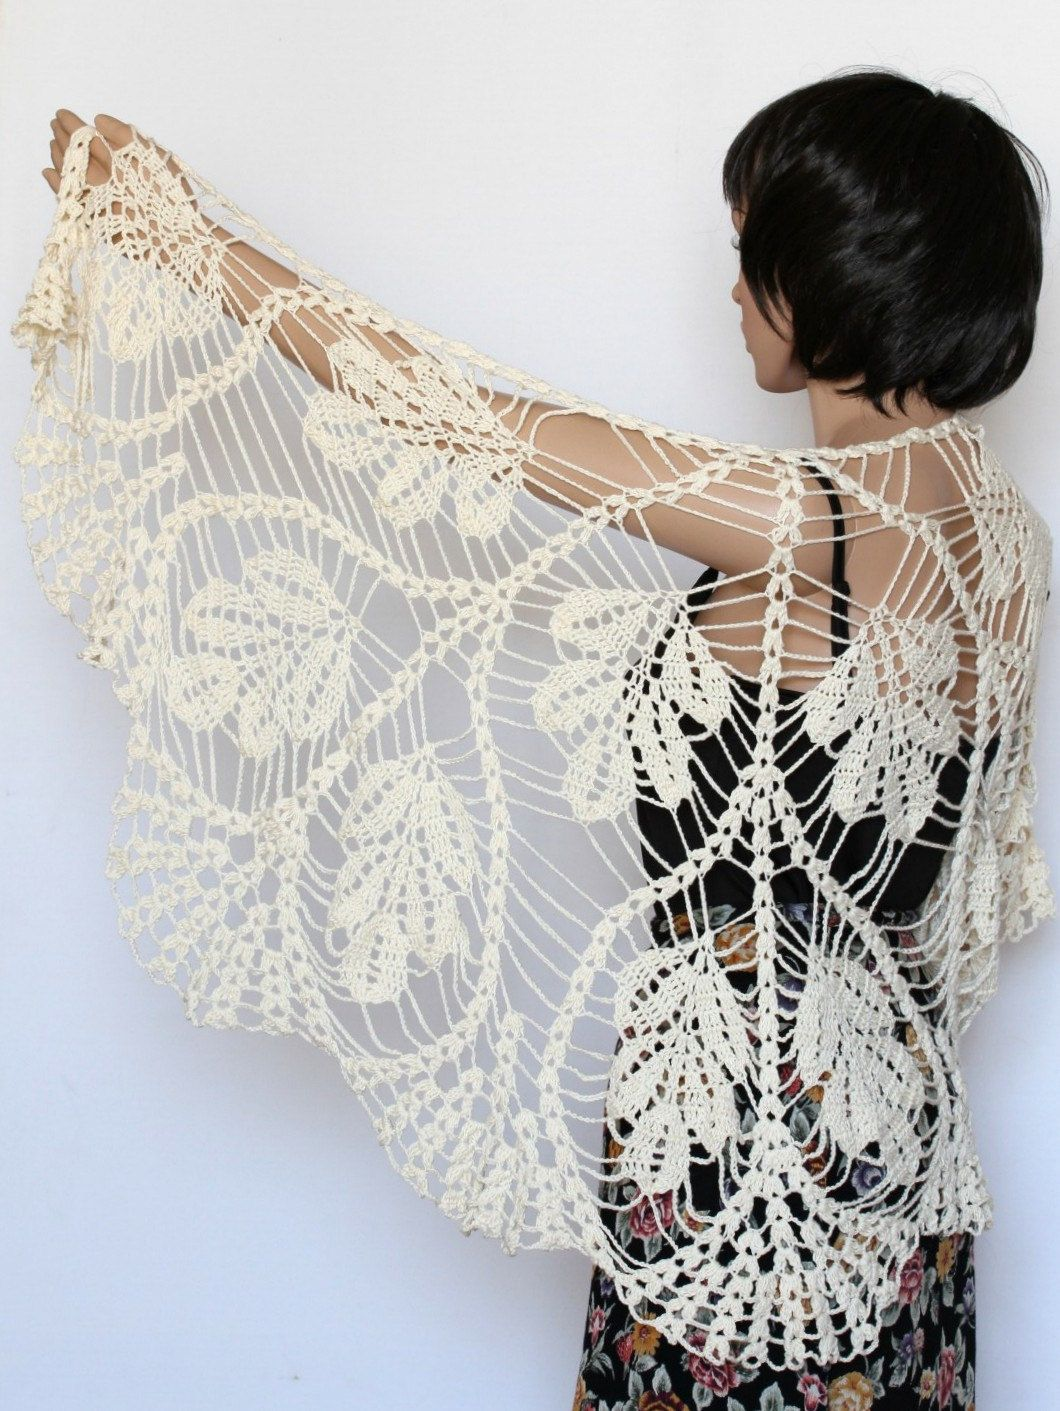 Ivory off white shawl lace knit shawl wedding shawl wraps shawls ivory off white shawl lace knit shawl wedding shawl wraps shawls 10900 usd by crochet shawl patternsscarf bankloansurffo Images